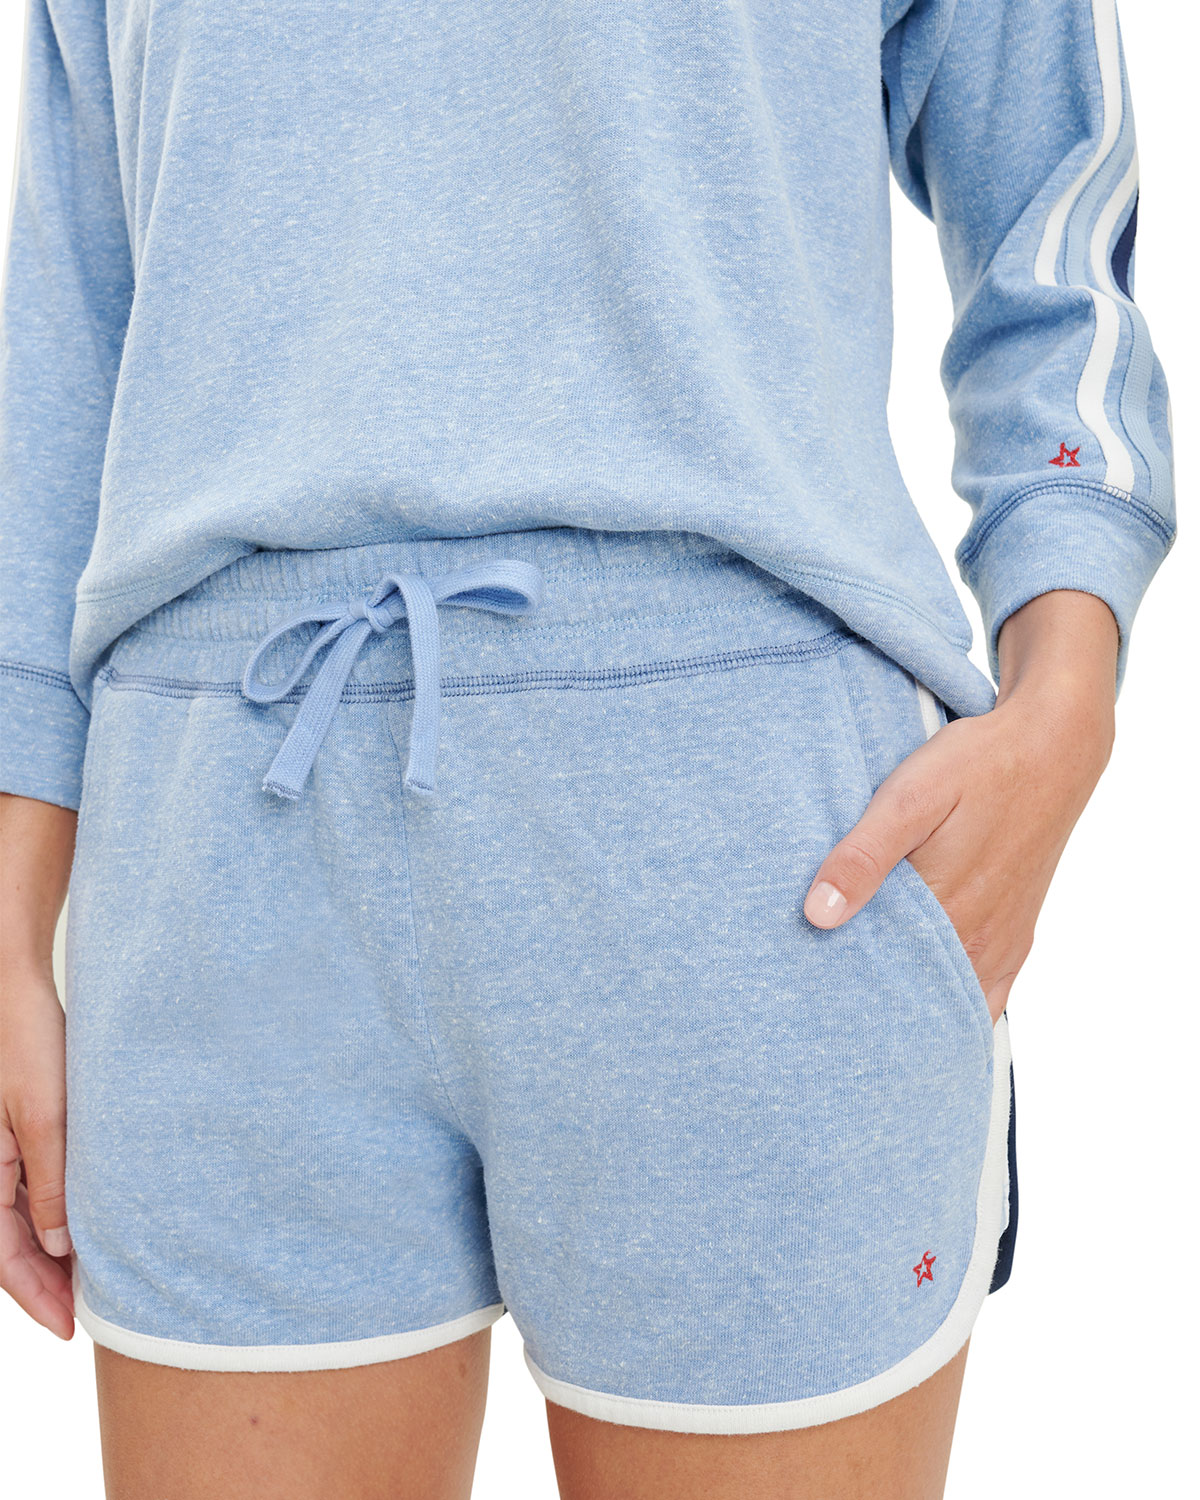 Clearwater Drawstring Shorts